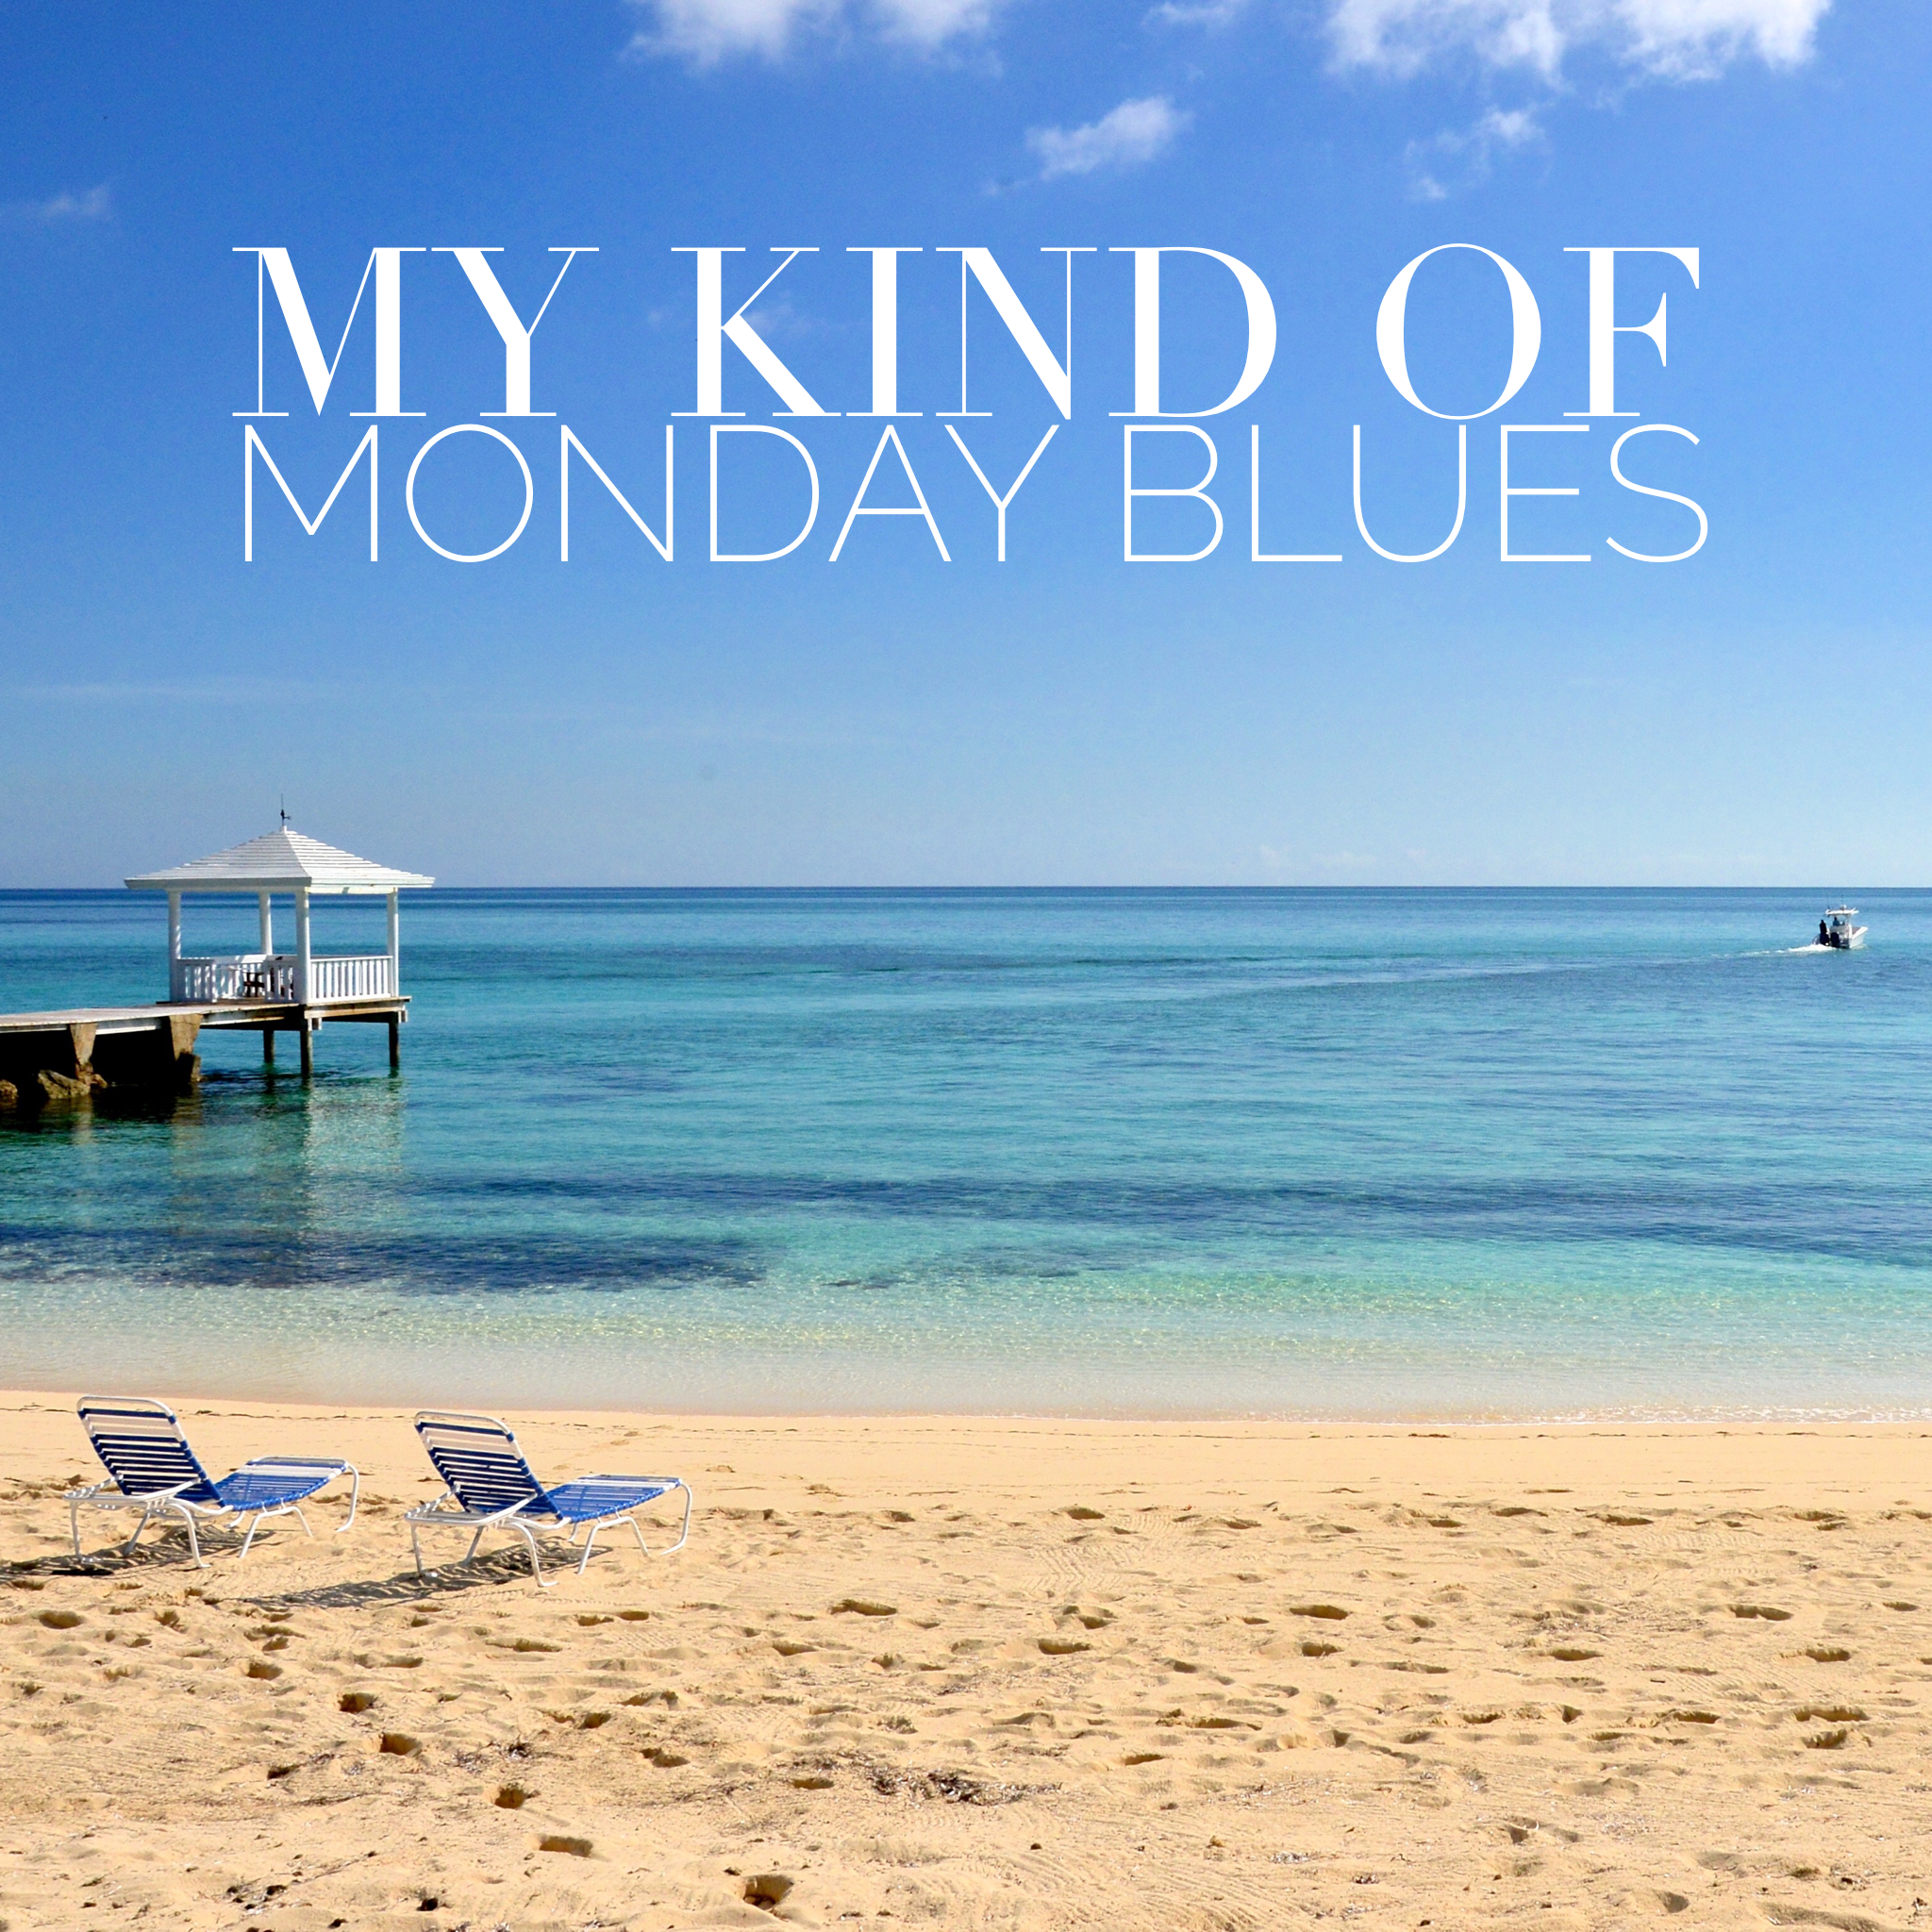 My Kind Of Monday Blues Good Beach Captions Beach Quotes Vacation Captions